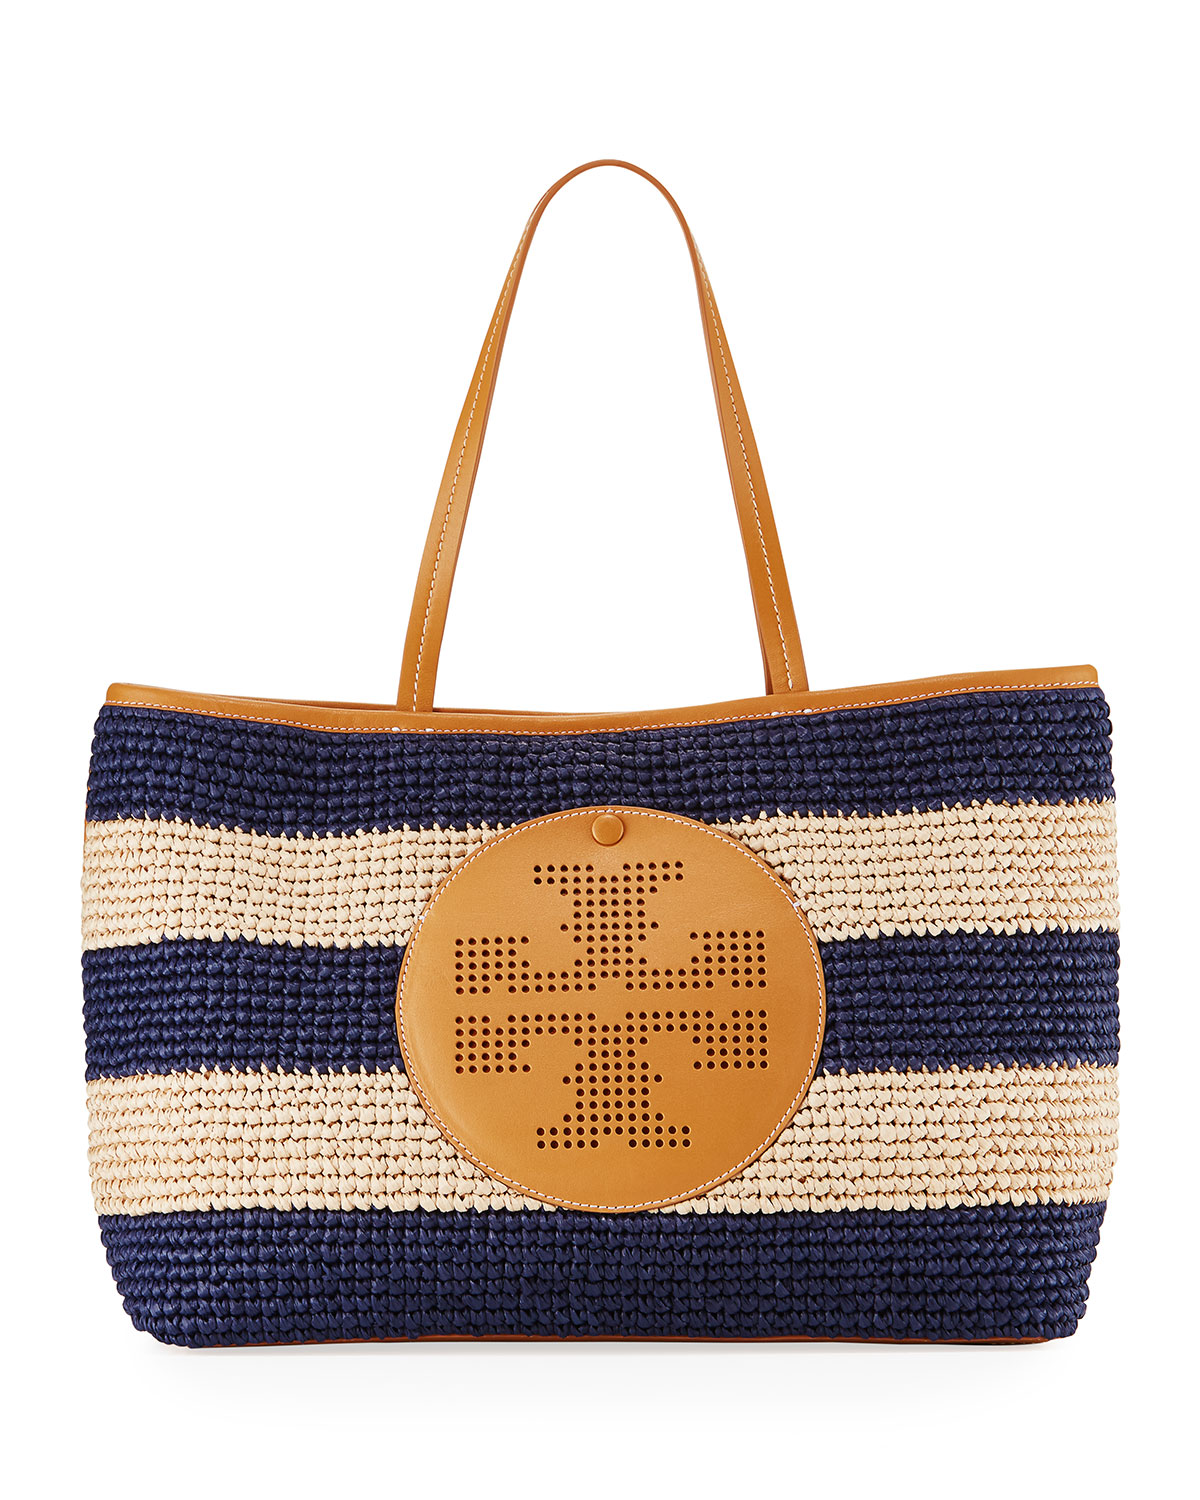 e917700d310c Tory Burch Straw Perforated Logo Tote Bag